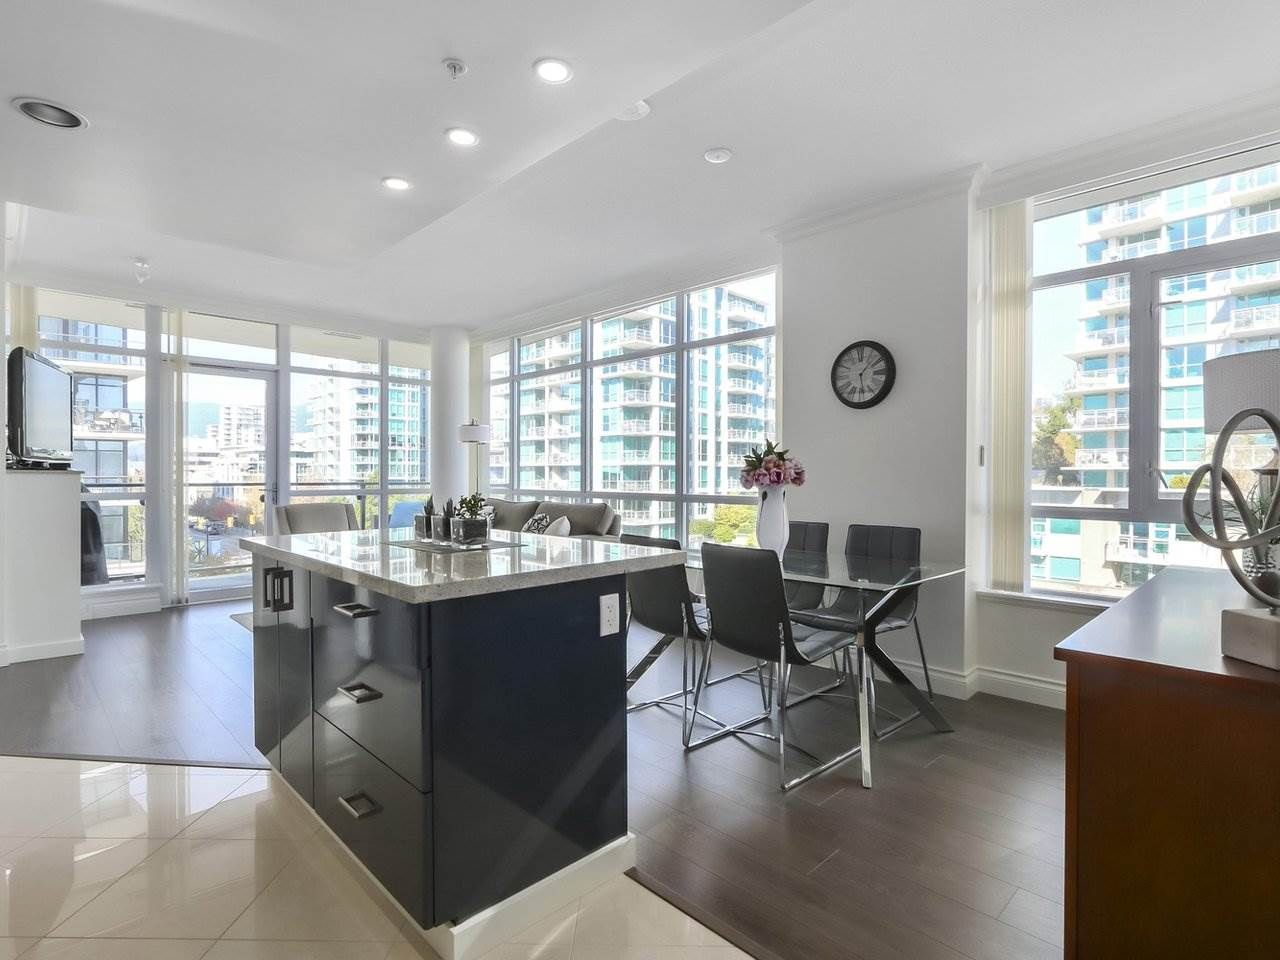 """Photo 10: Photos: 608 172 VICTORY SHIP Way in North Vancouver: Lower Lonsdale Condo for sale in """"Atrium at the Pier"""" : MLS®# R2454404"""